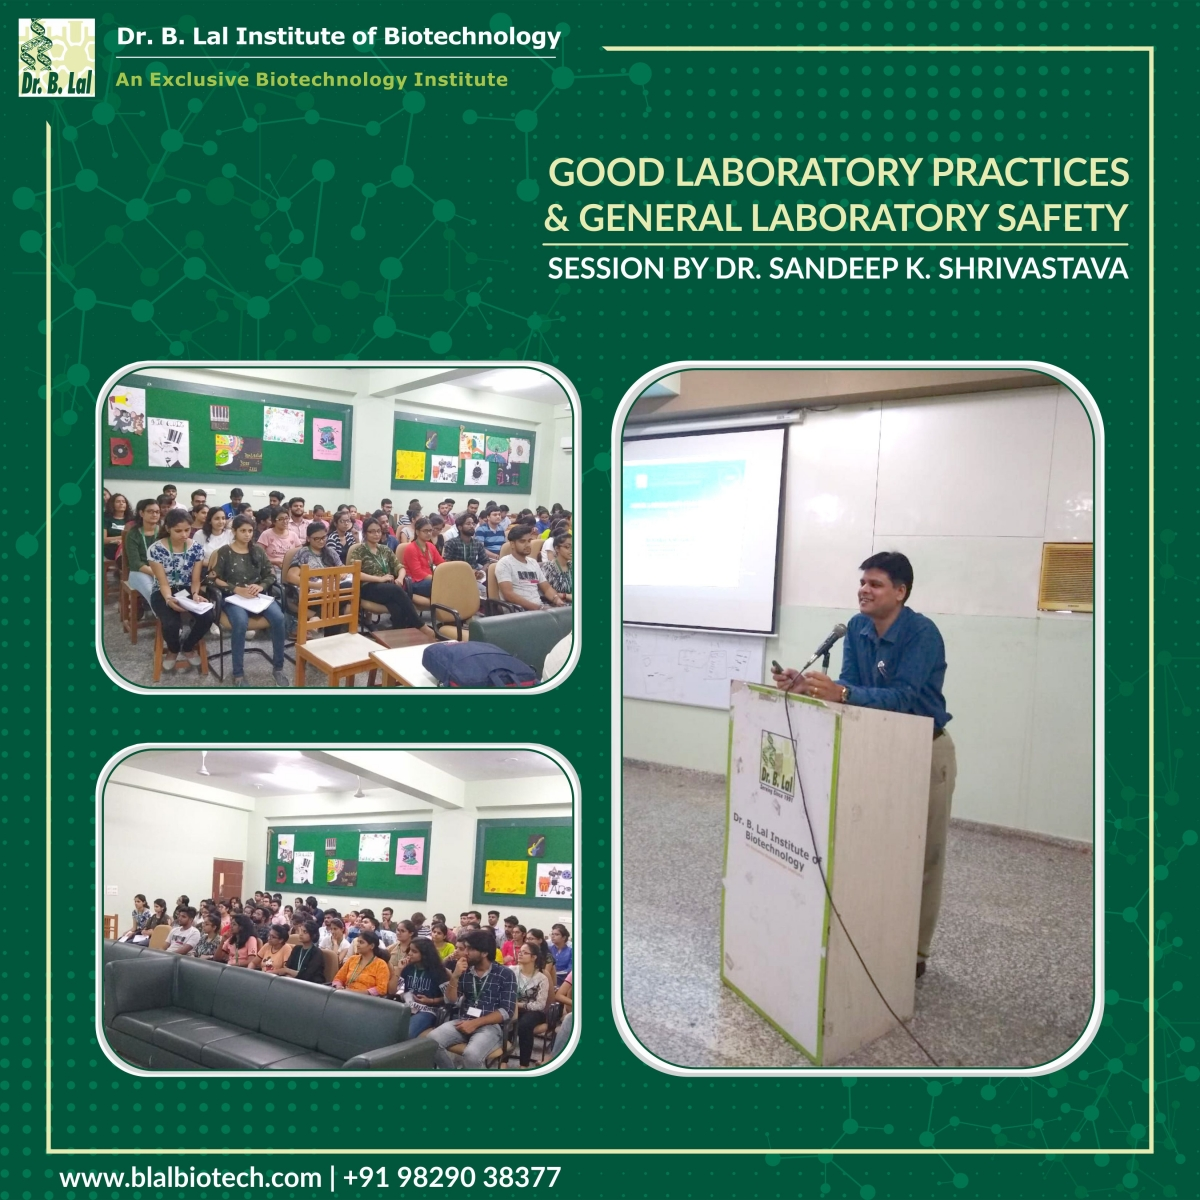 Good Laboratory Practices | Session by Dr. Sandeep K Shrivastava